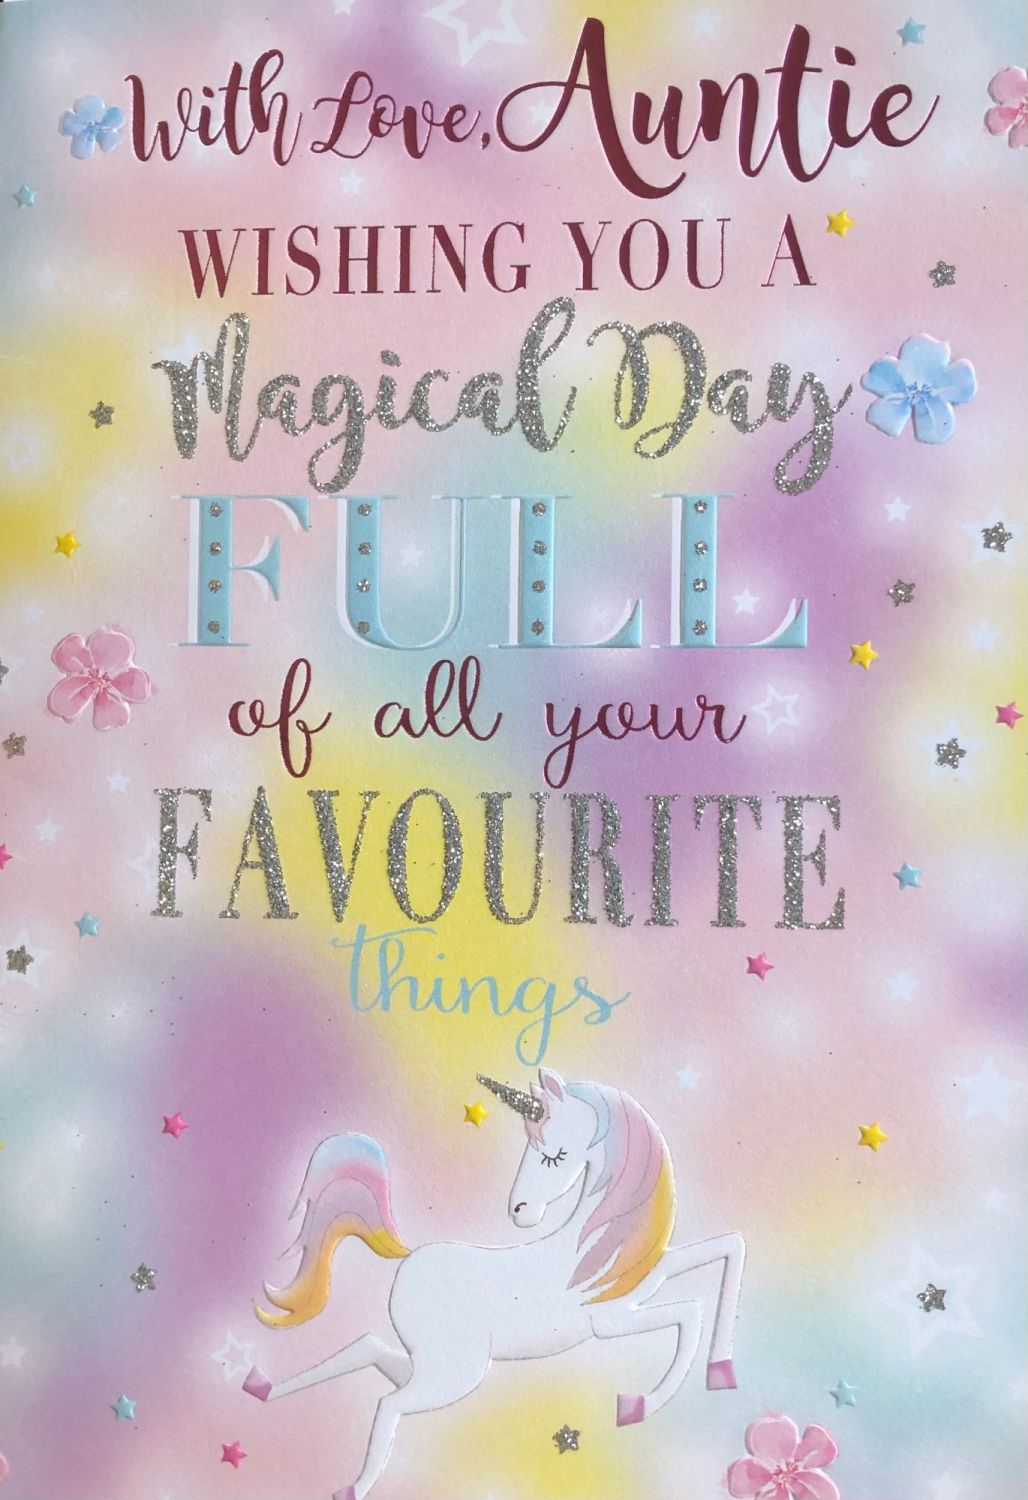 With Love, Auntie Wishing You A Magical Day Full Of All Your Favourite Thin